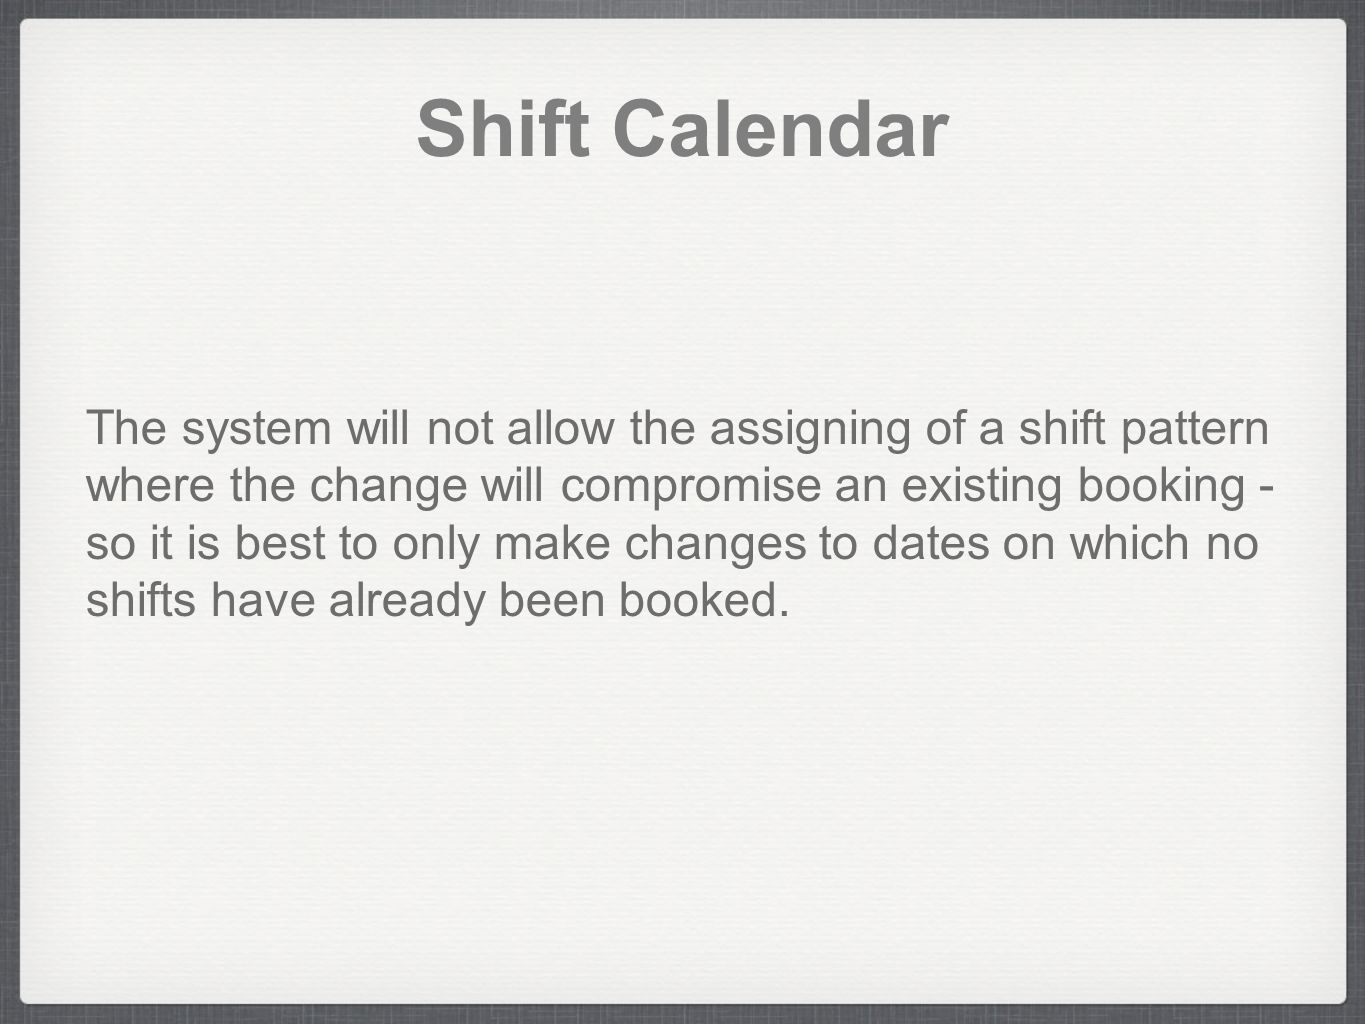 Shift Calendar The system will not allow the assigning of a shift pattern where the change will compromise an existing booking - so it is best to only